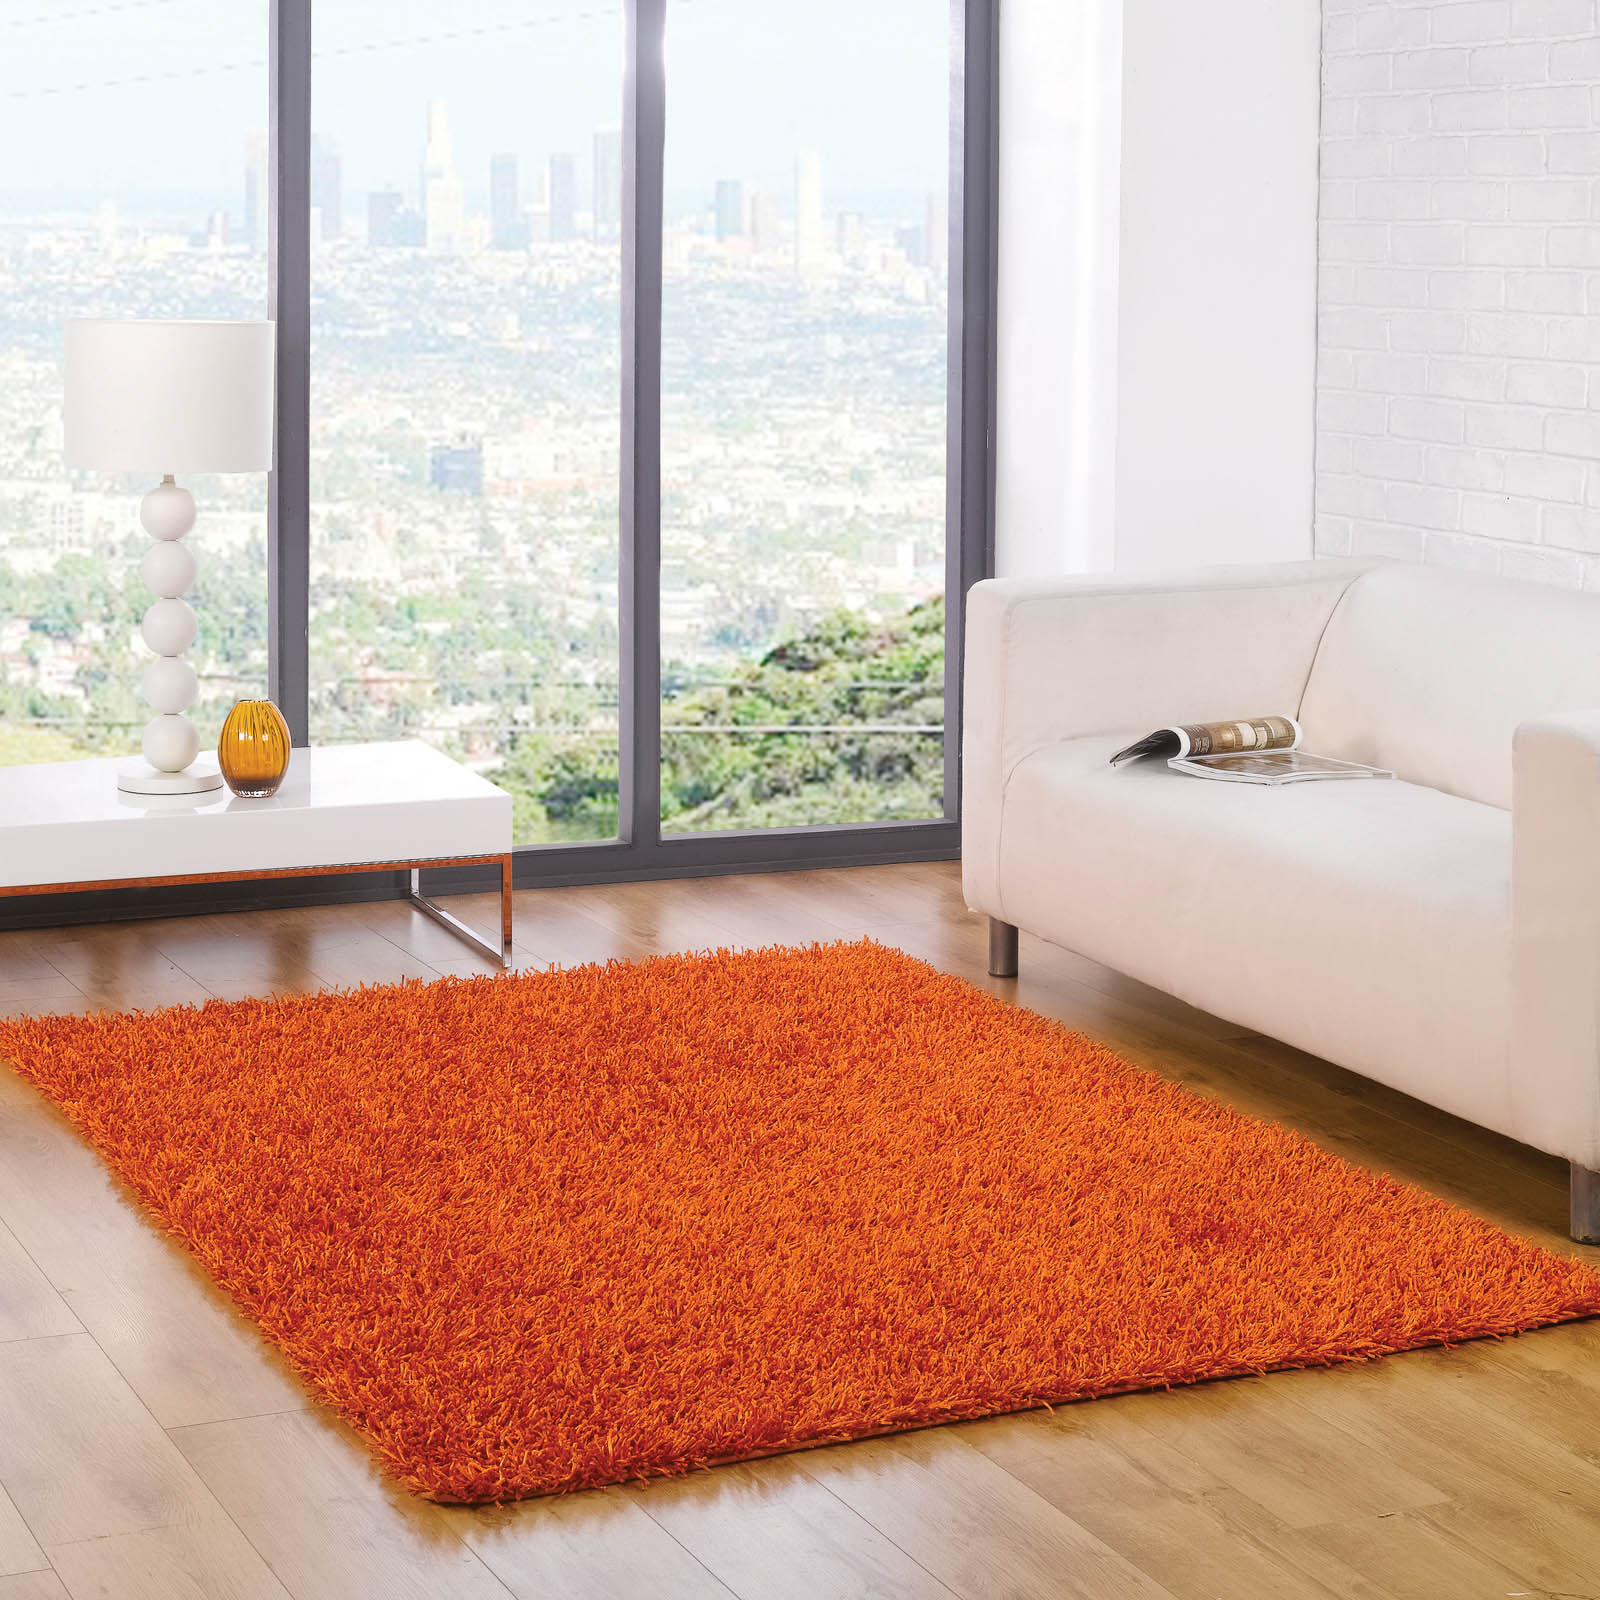 Spider Shaggy Rugs in Orange